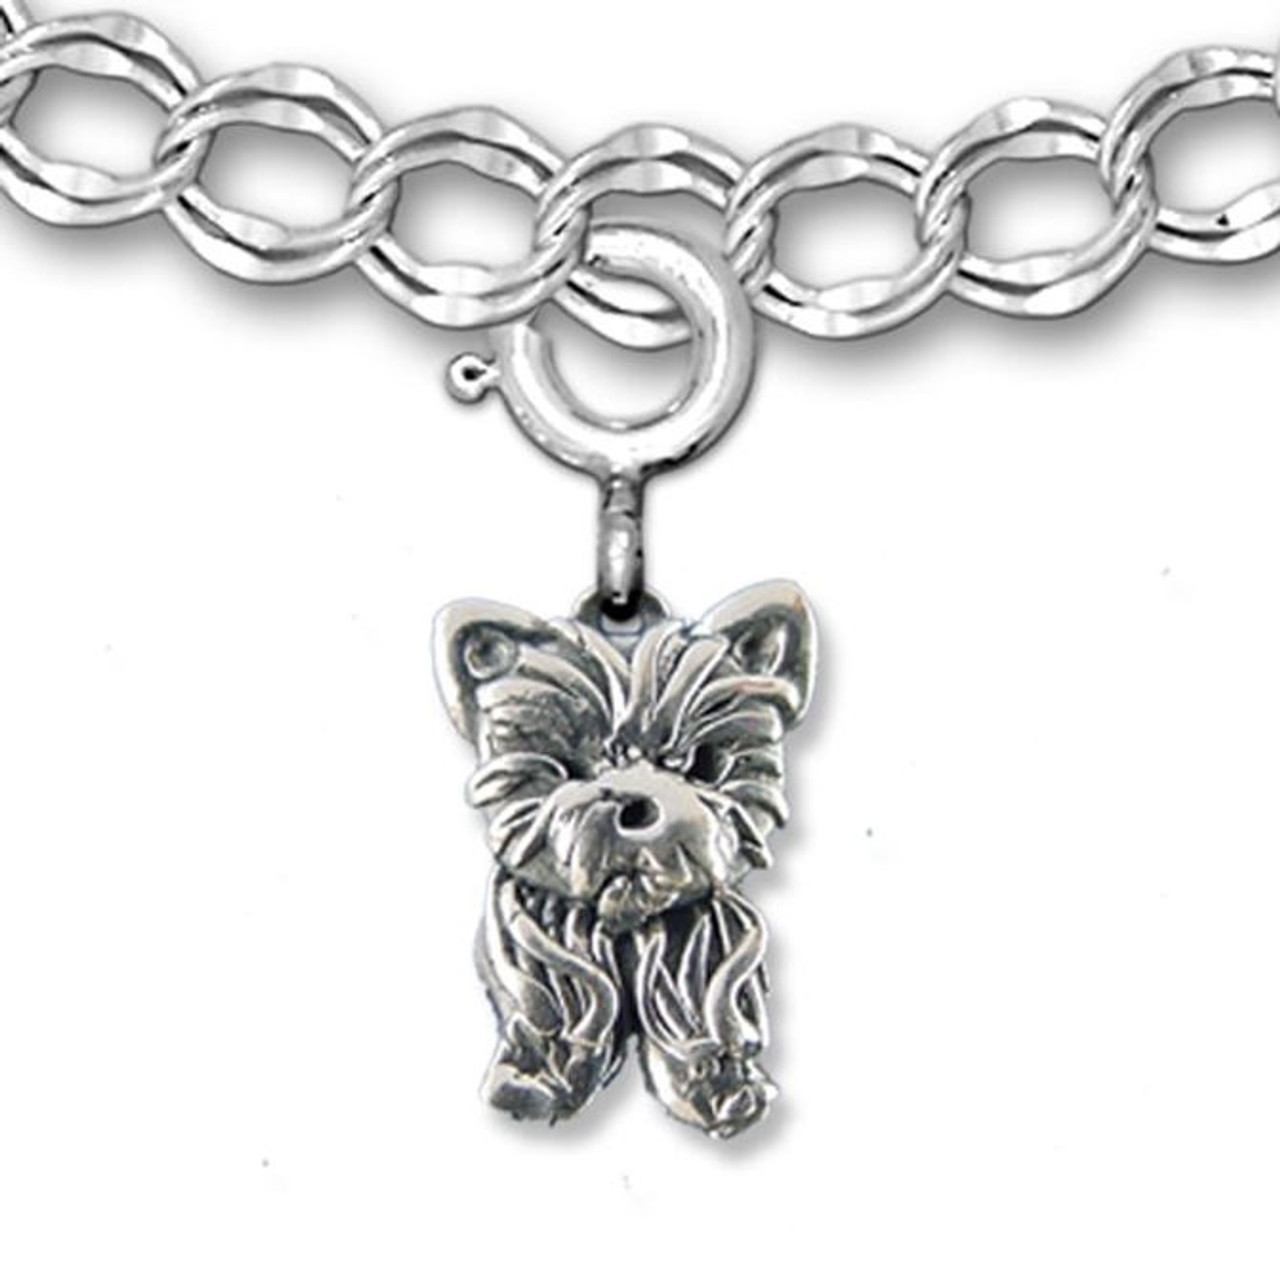 Yorkshire Terrier Charm-Argent Sterling 925-YORKSHIRE Chien AKC TOY ENGLAND NEUF